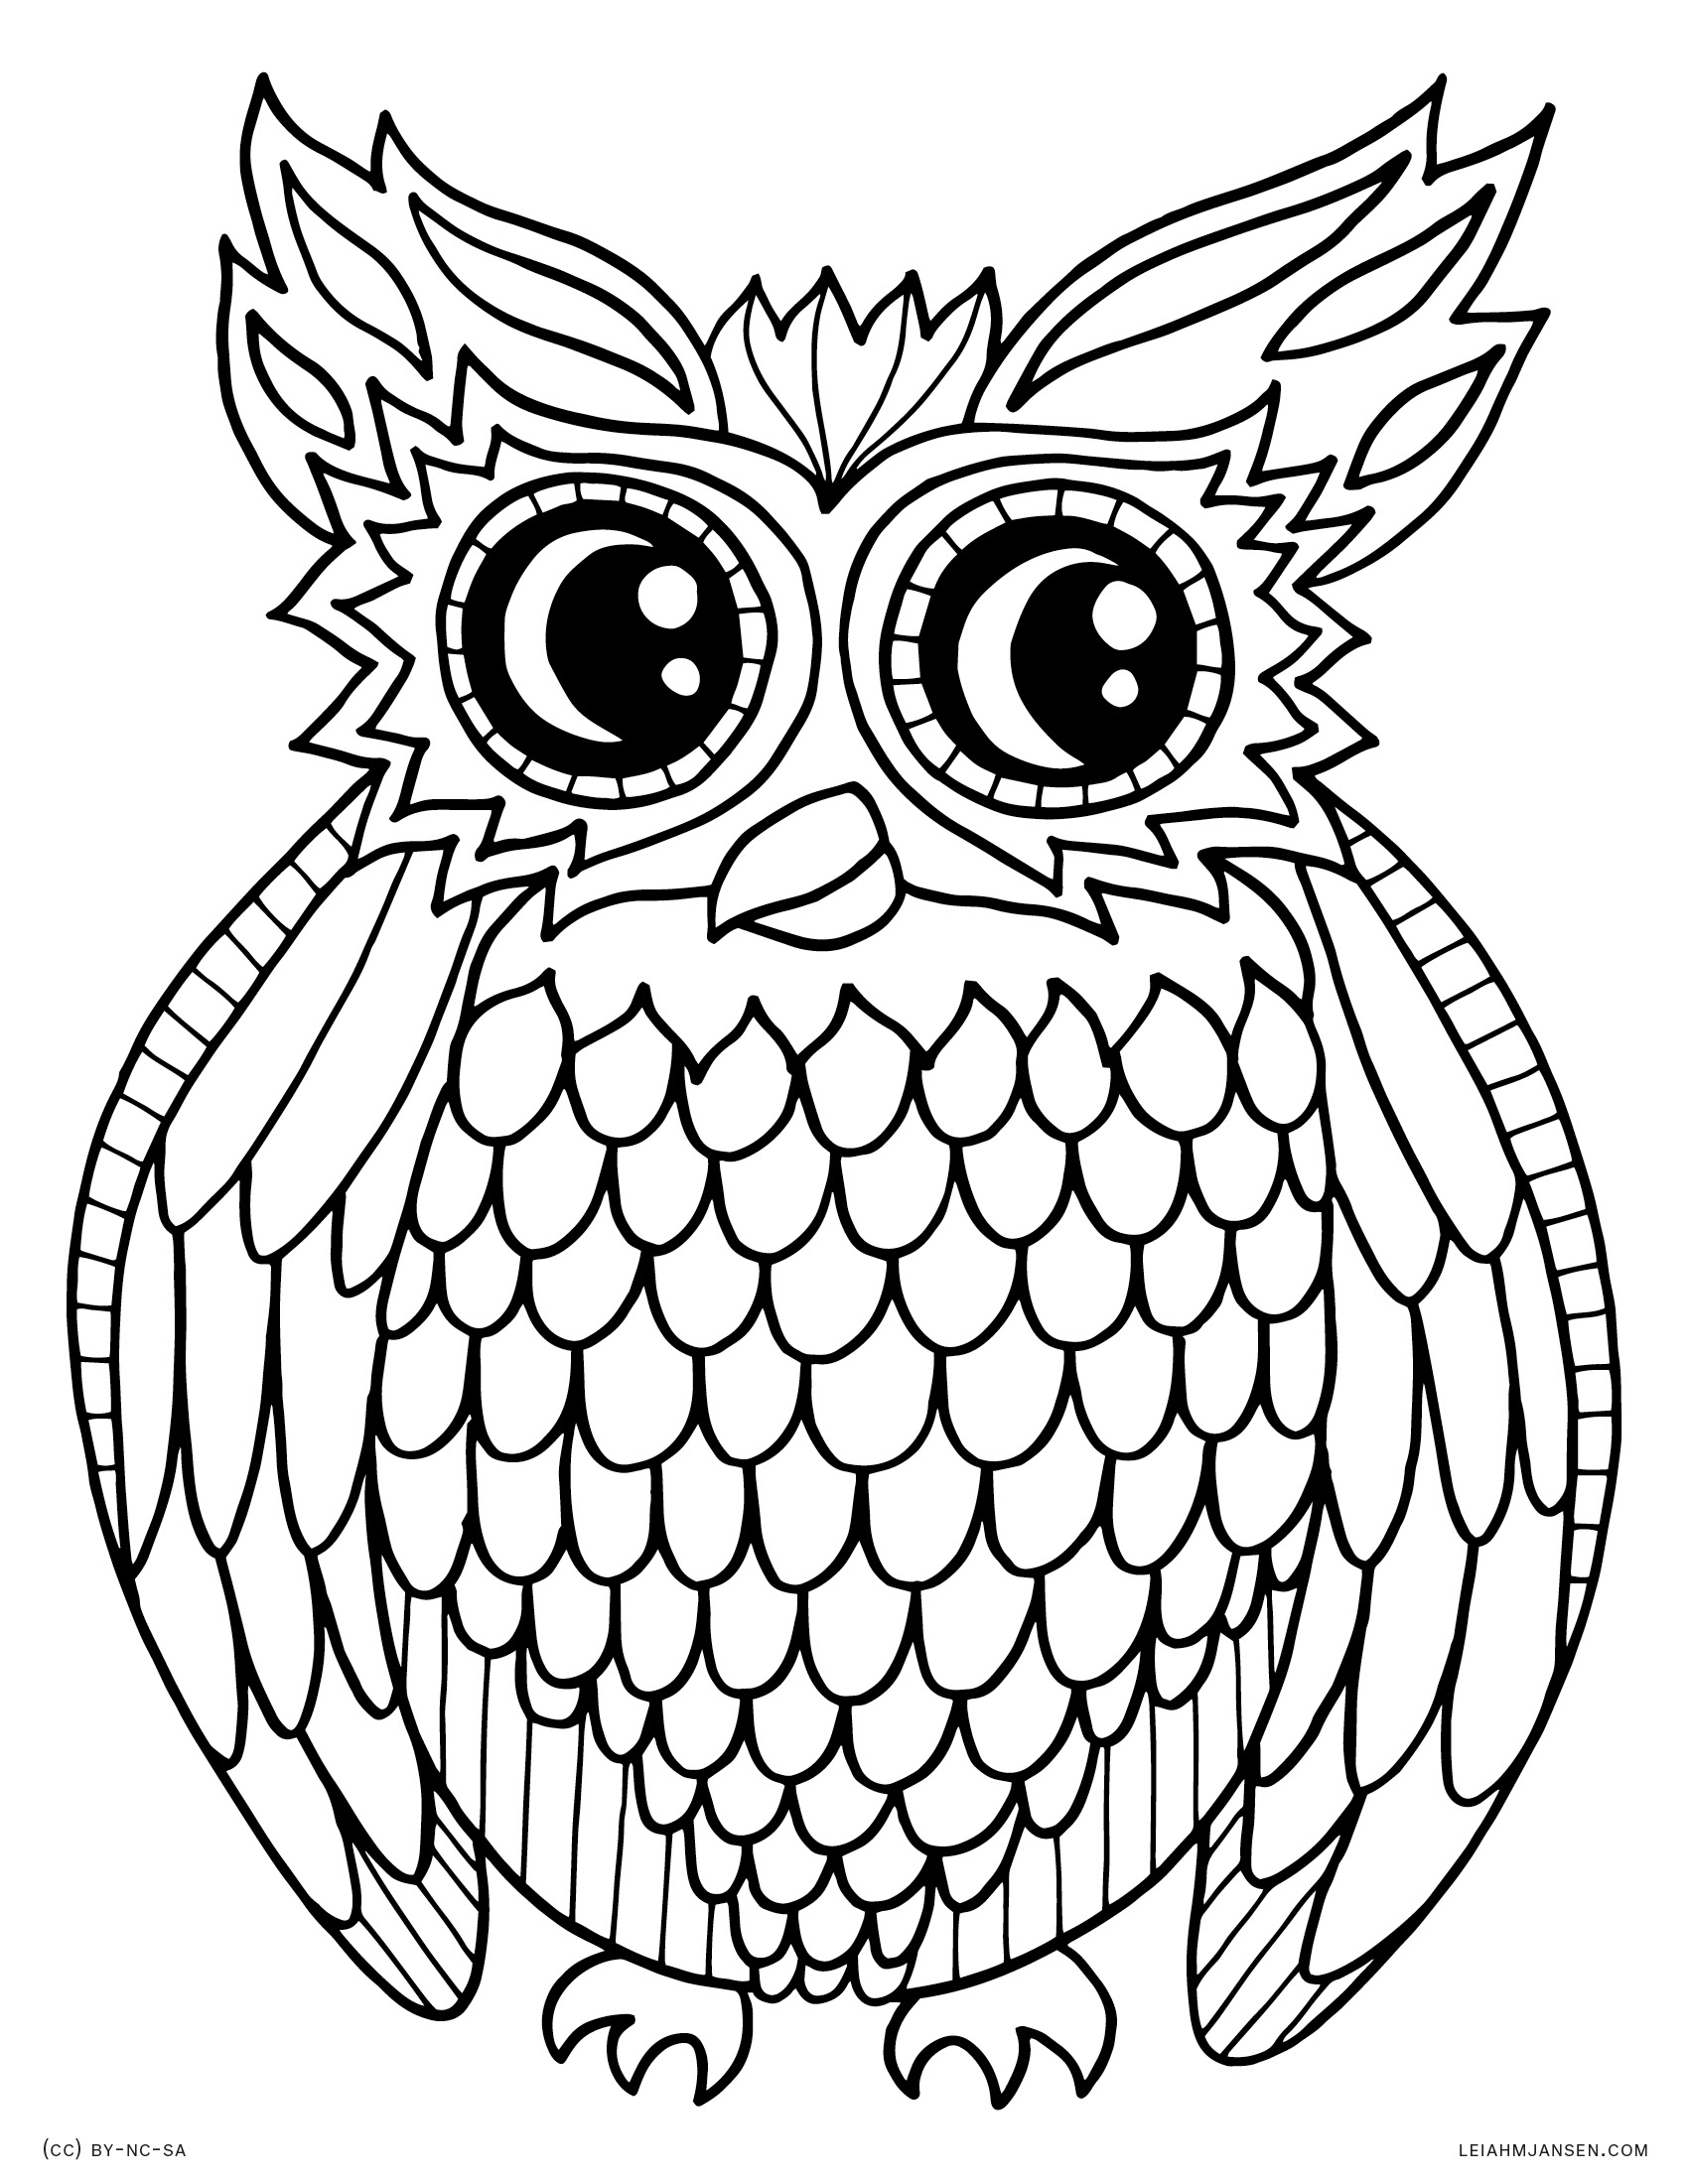 free printable coloring pages of owls owl coloring pages for adults free detailed owl coloring printable pages of coloring free owls